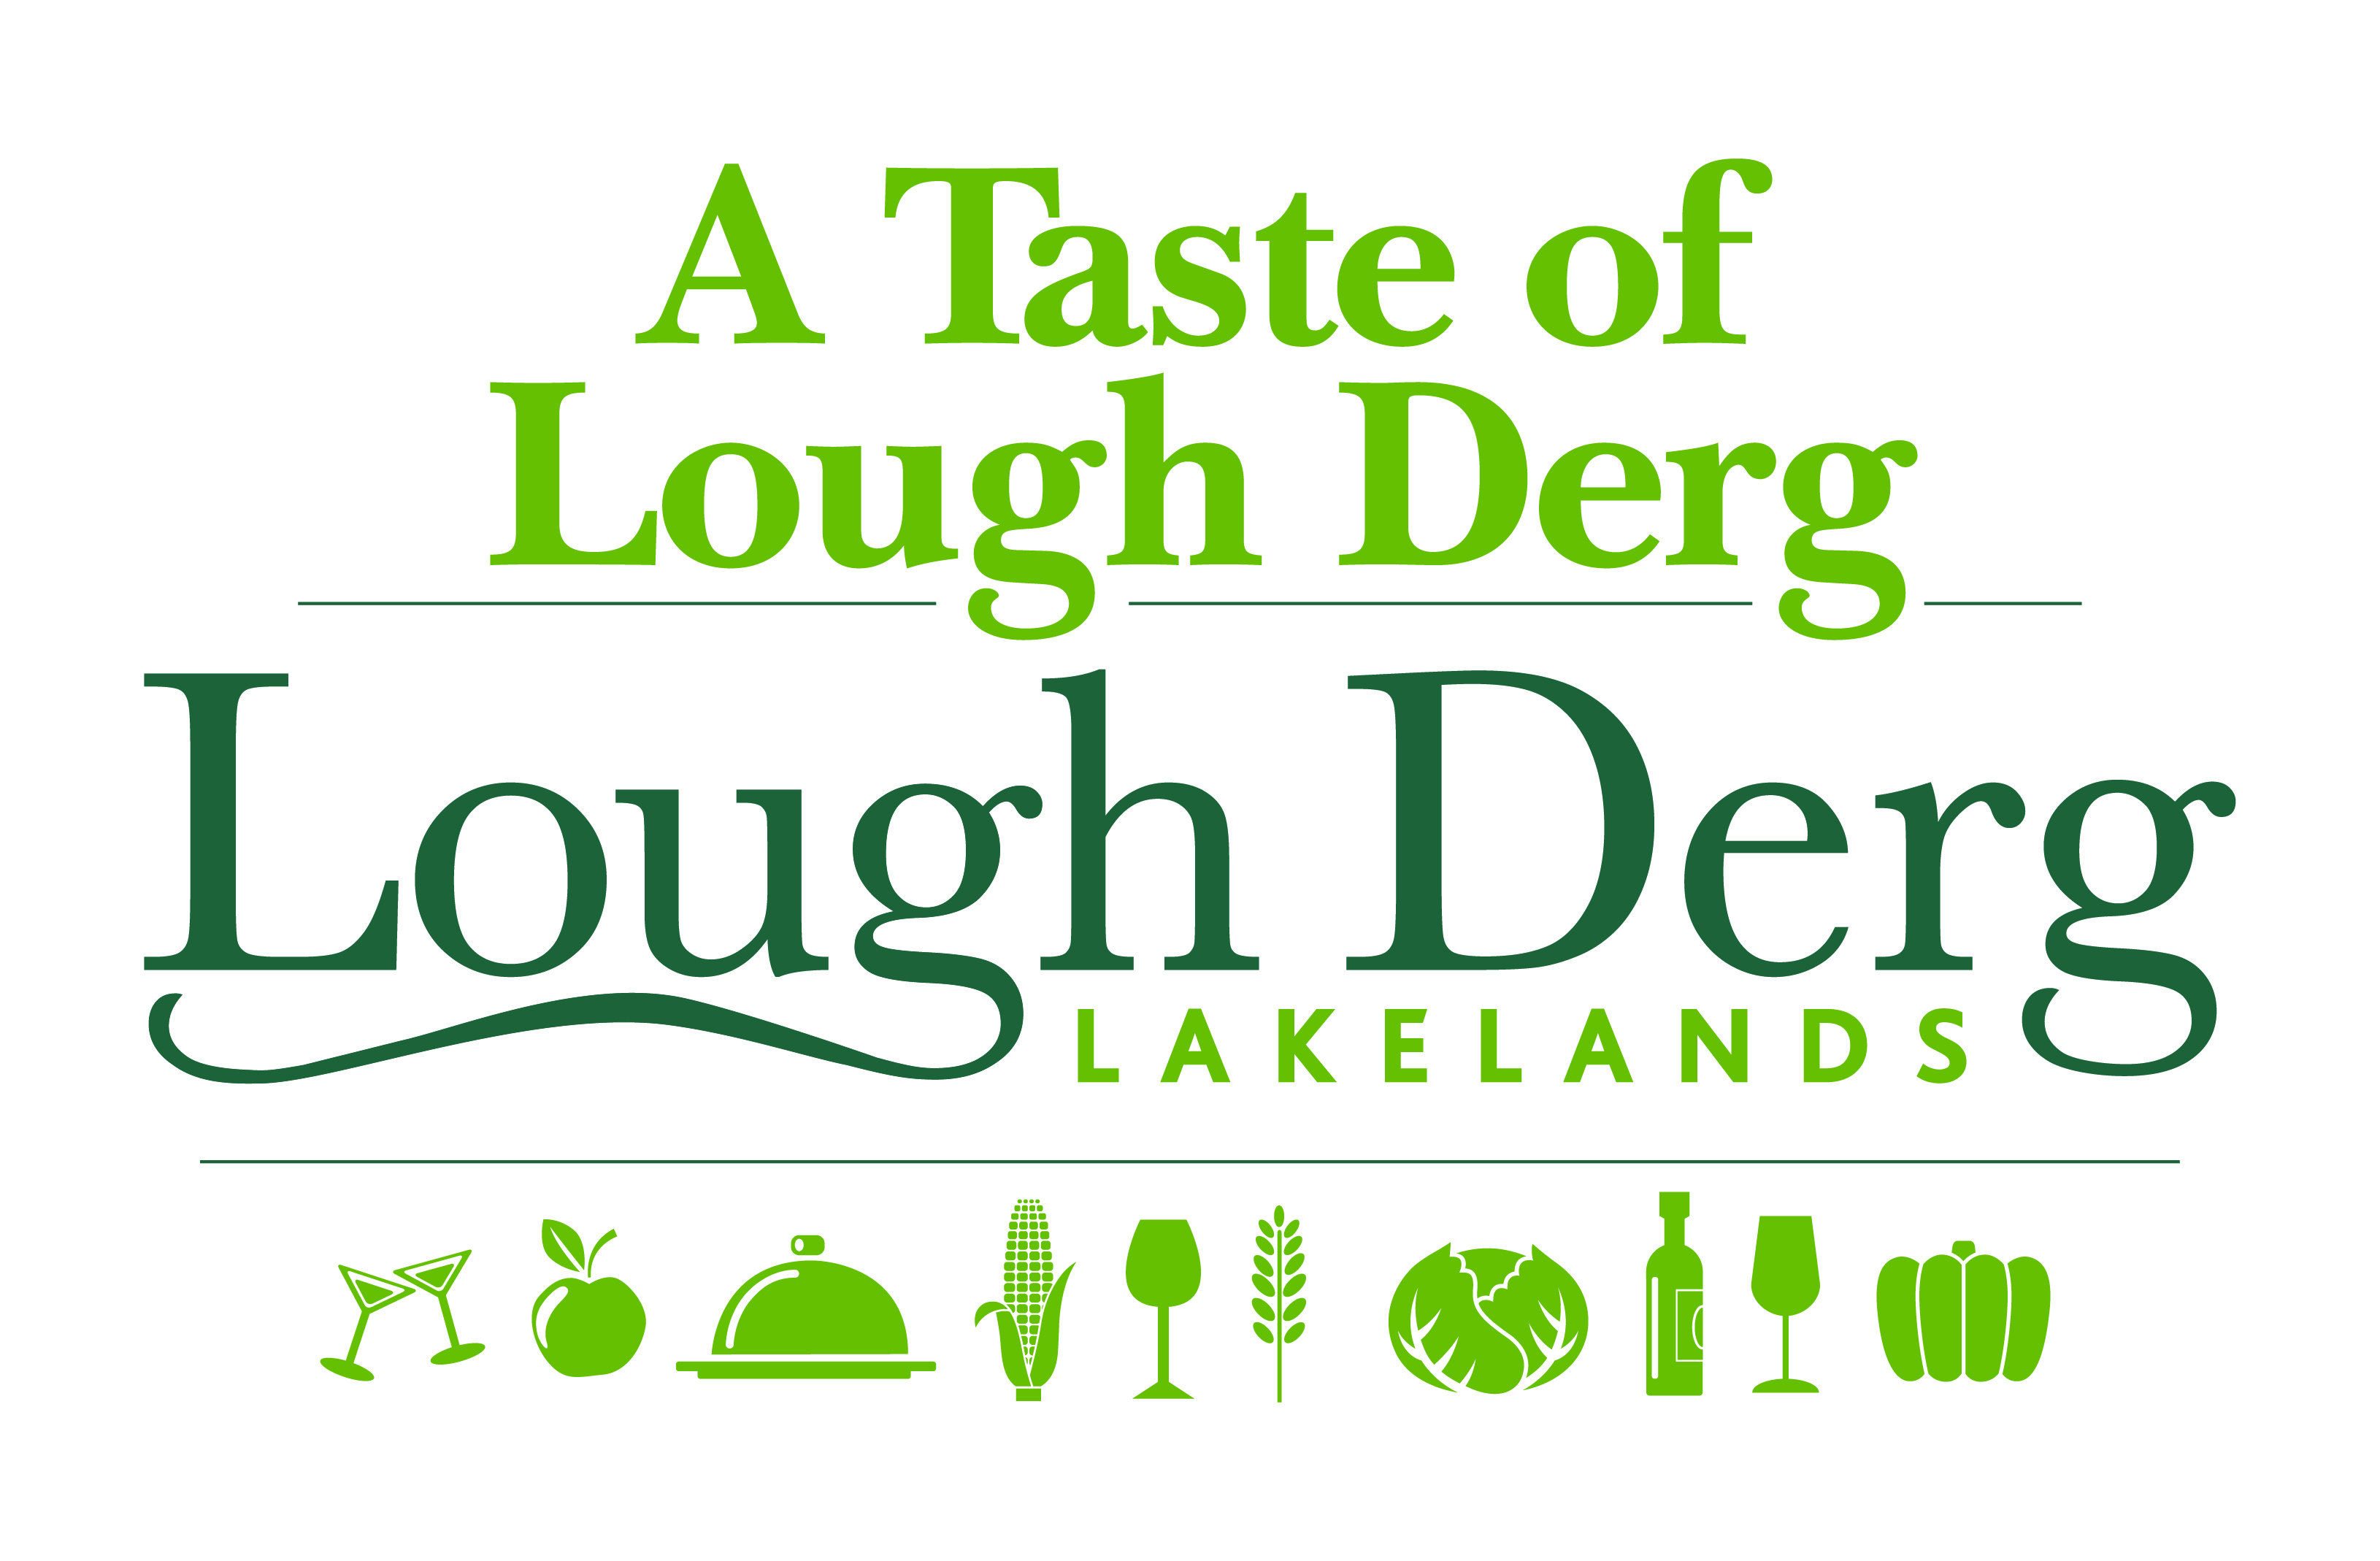 Lough Derg Lakelands Tase of Logo